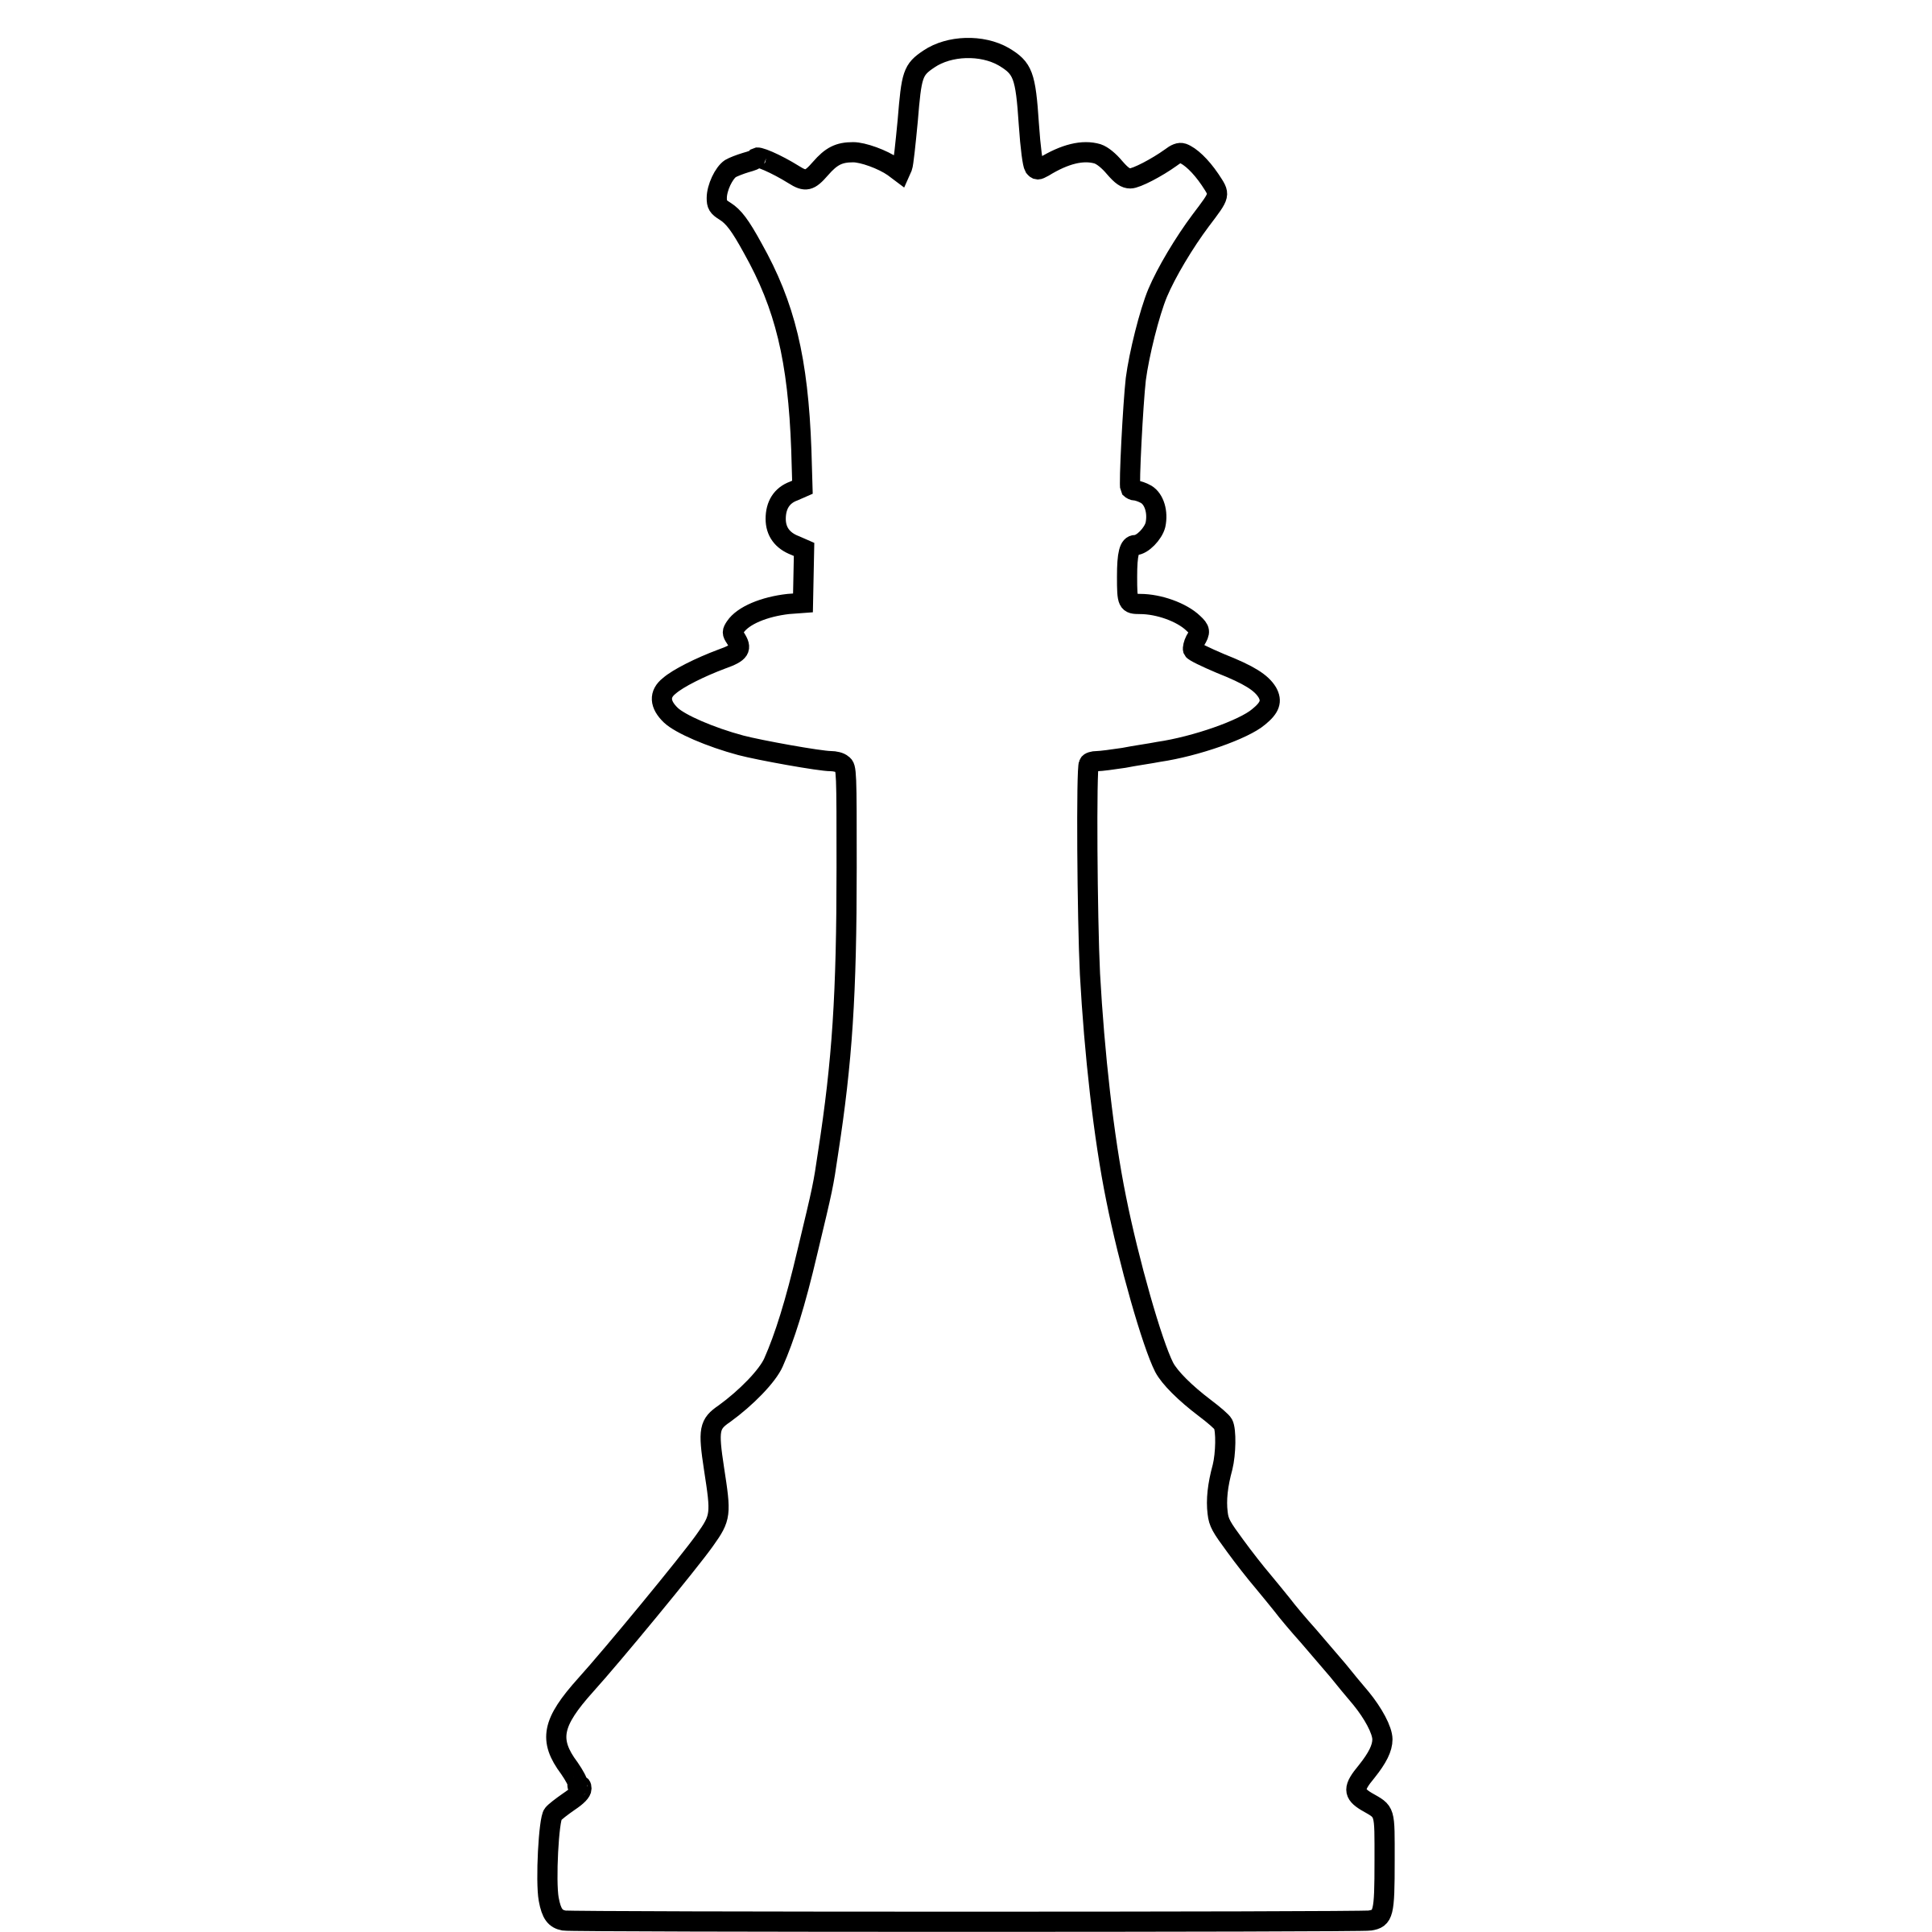 White Silhouette Chess Piece REMIX – Queen / Dama by DG-RA